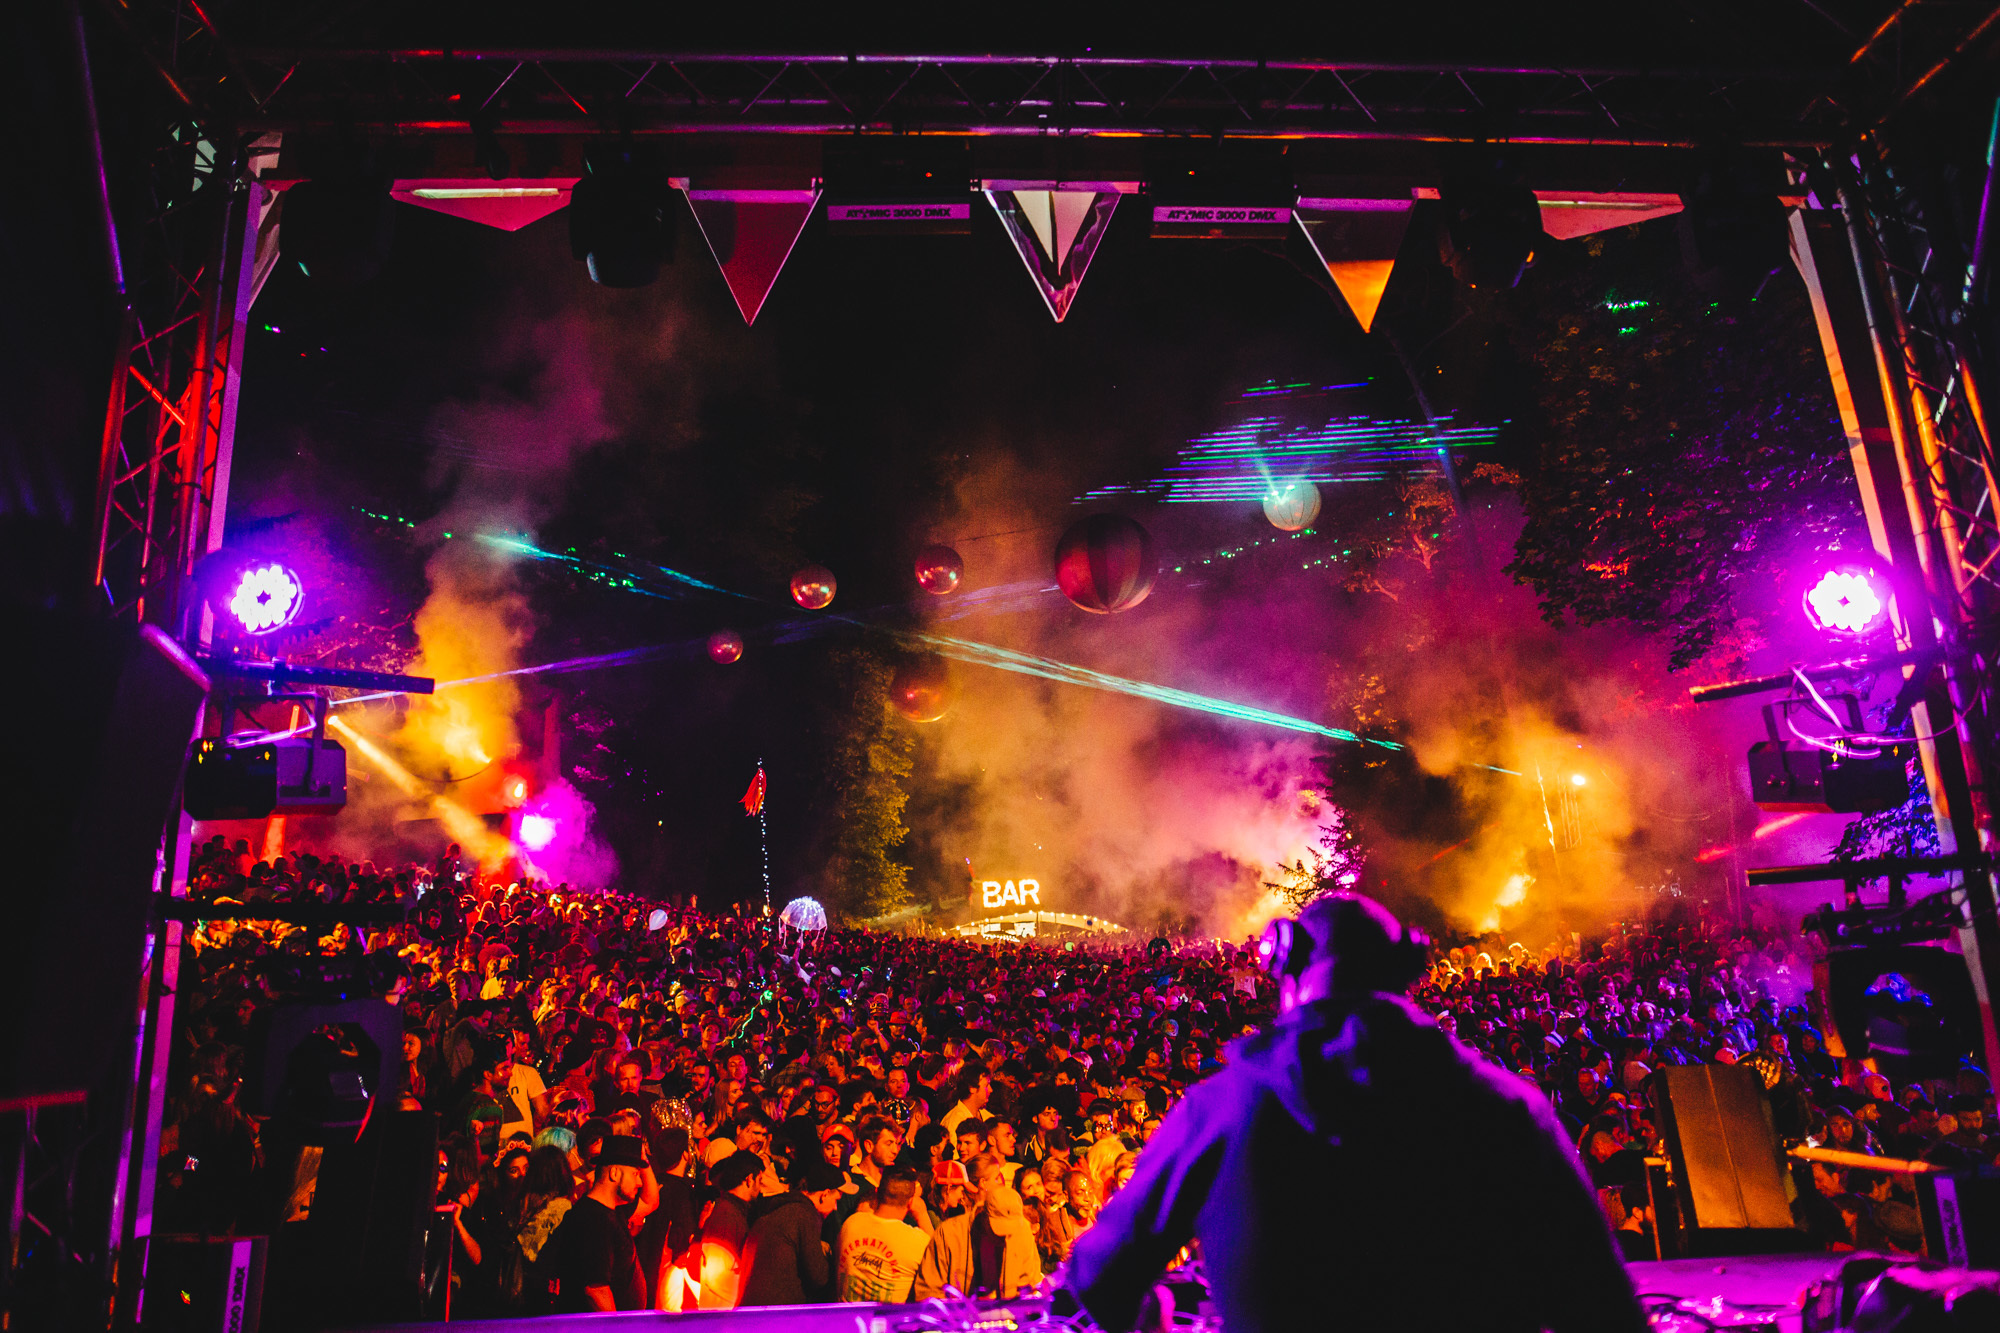 Wilderness Festival 2019 in Charlbury sees noise complaints rise